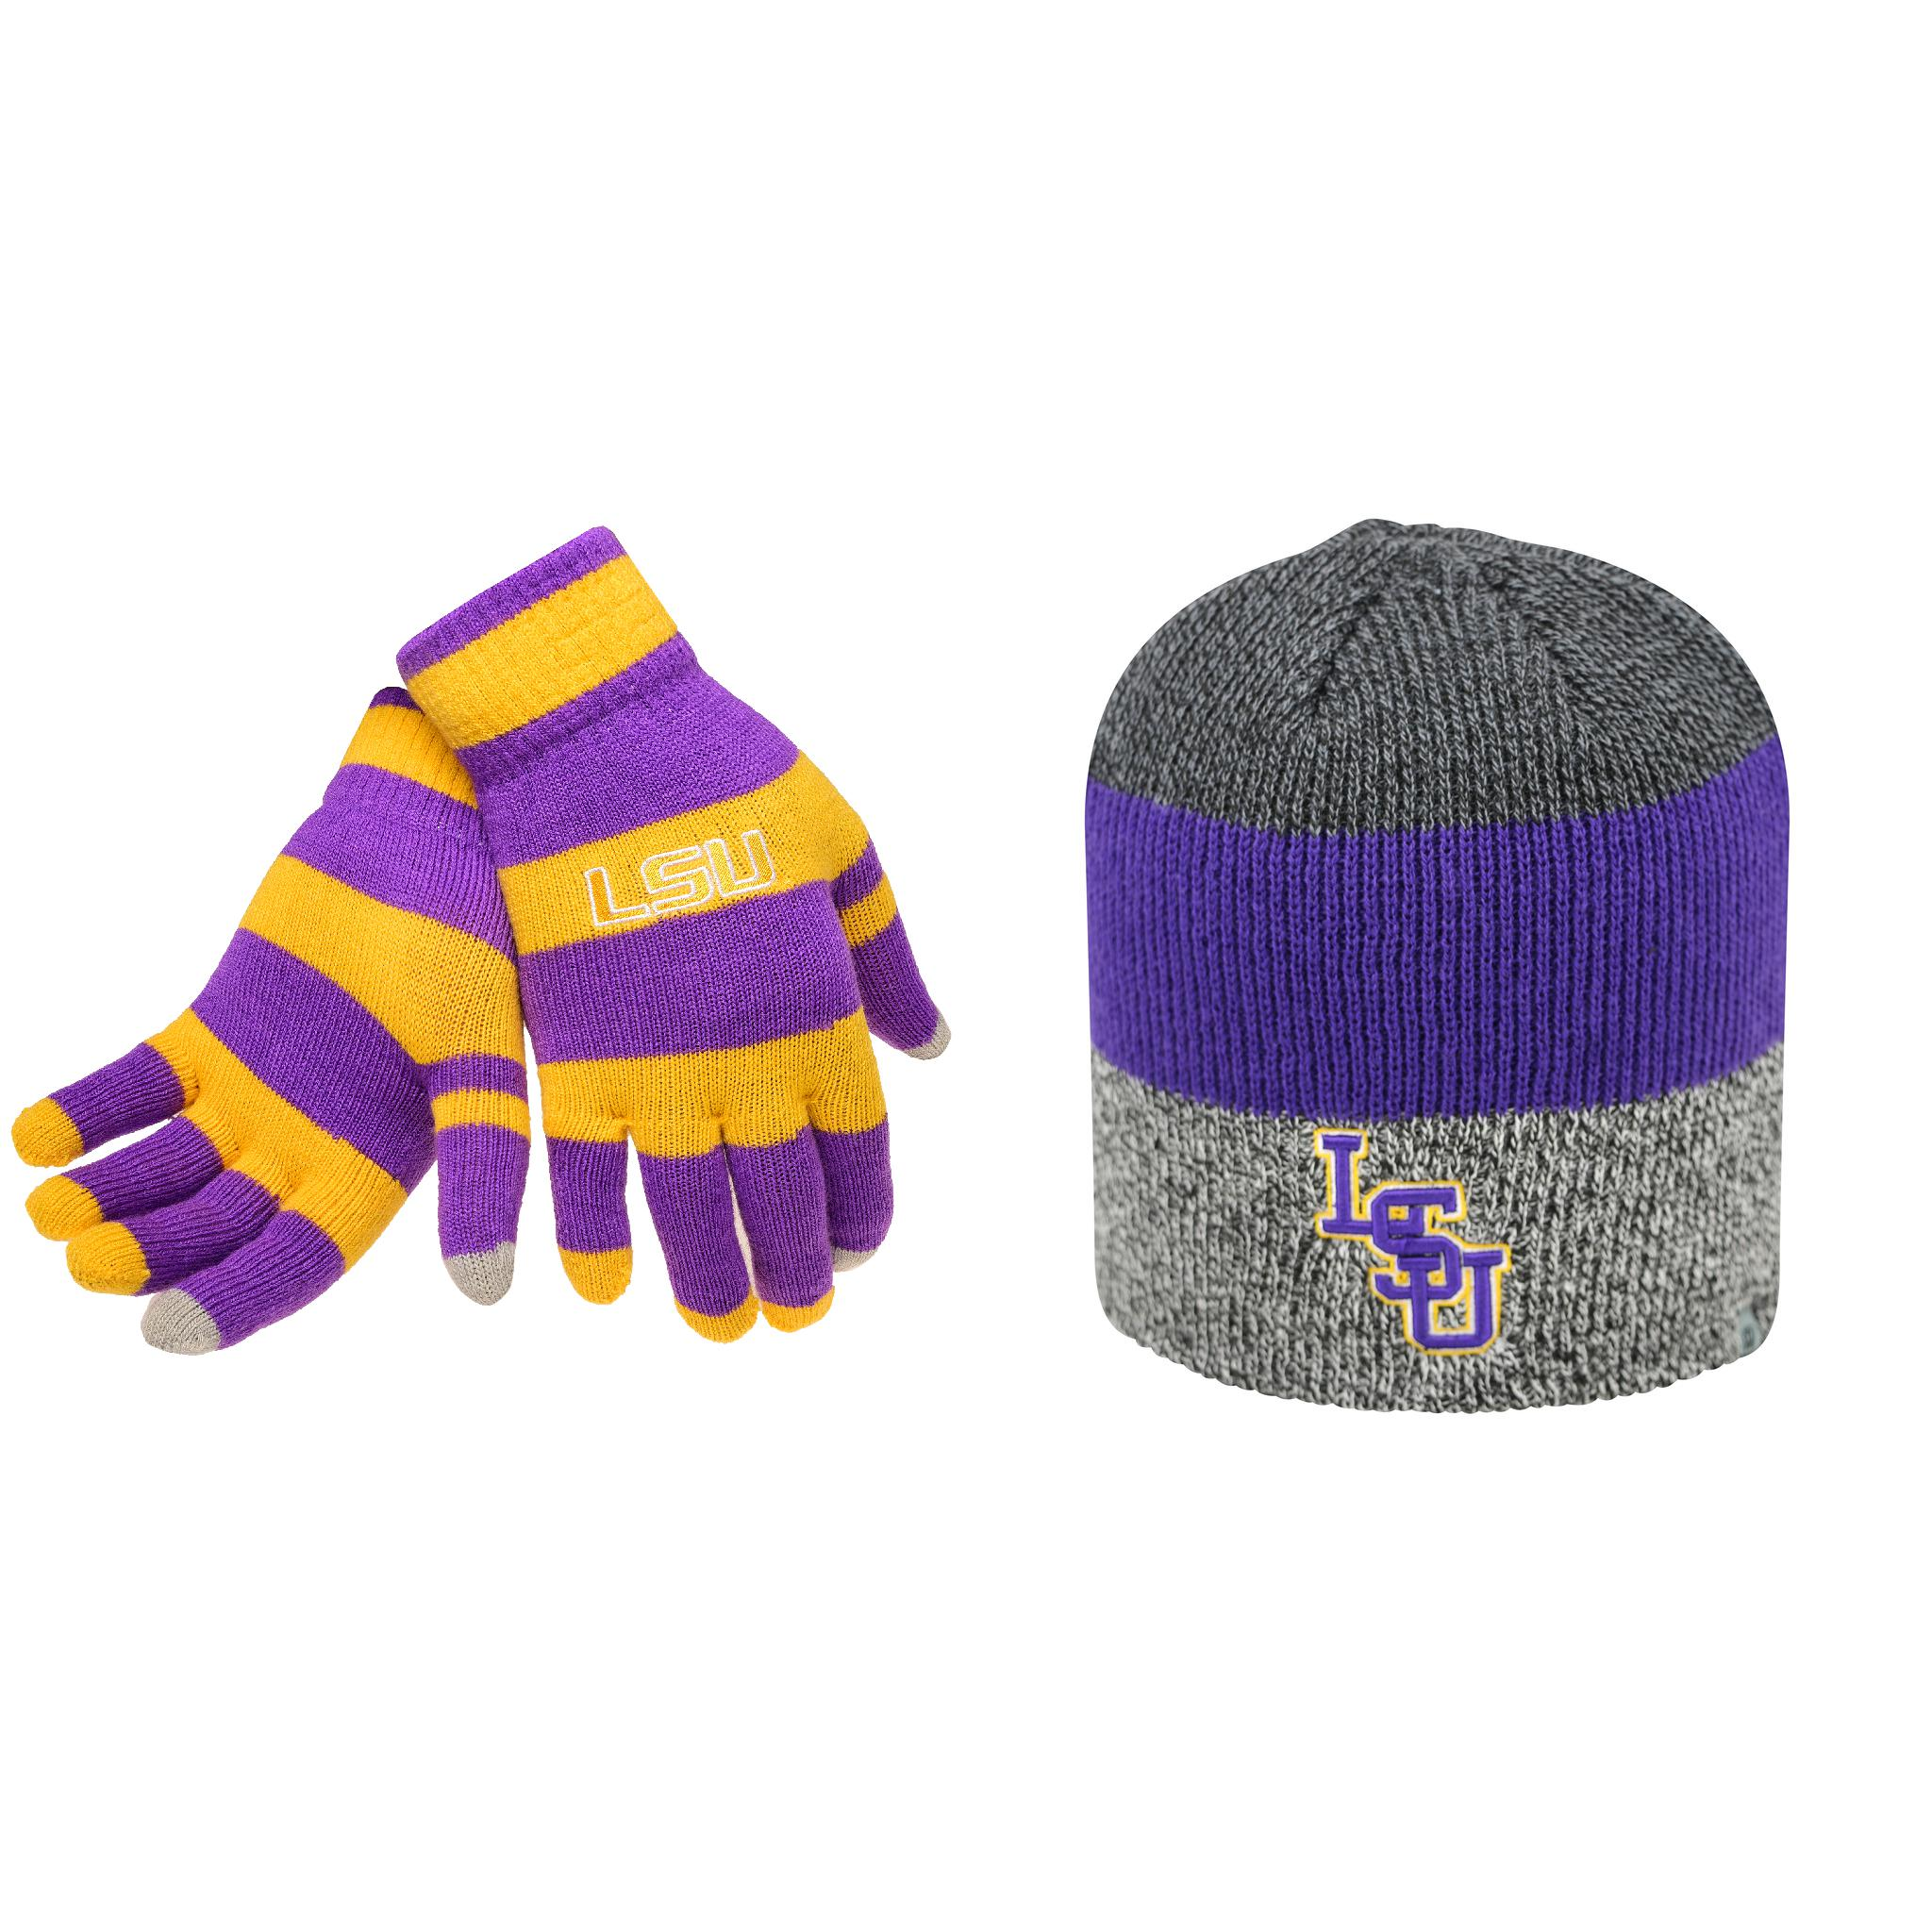 d95b9f91cc1 ... where can i buy ncaa lsu tigers glove stripe knit and sunset beanie hat  2 pack